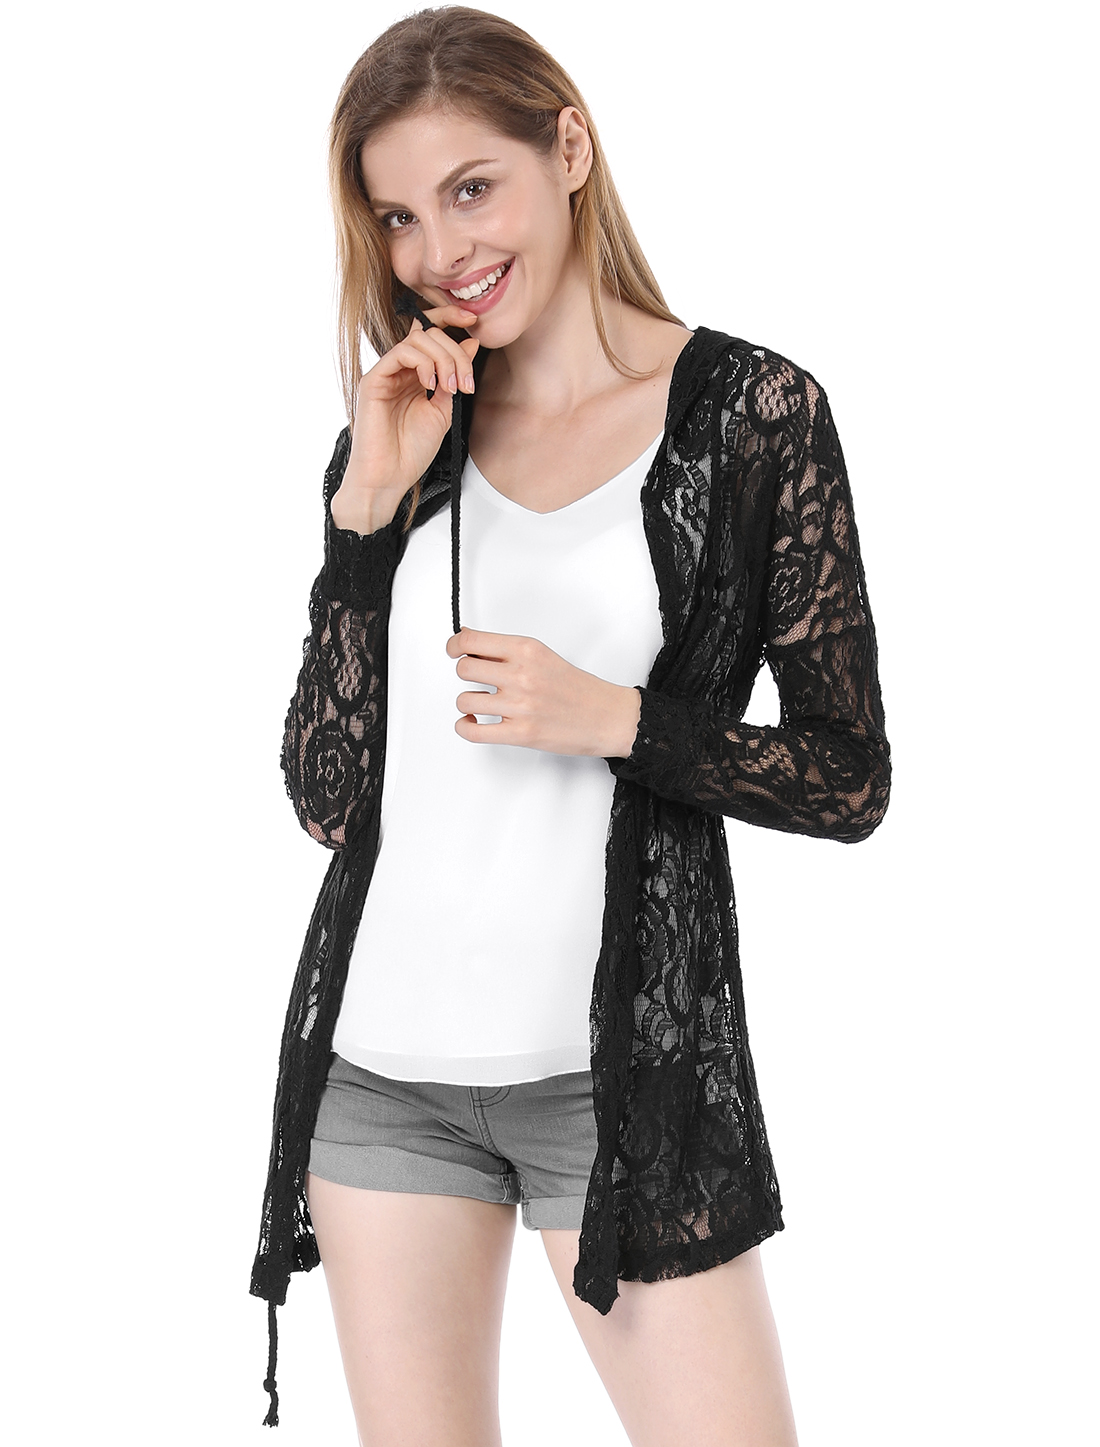 Lady New Fashion Drawstring Waist Design Black Semi-Sheer Lace Coat XL